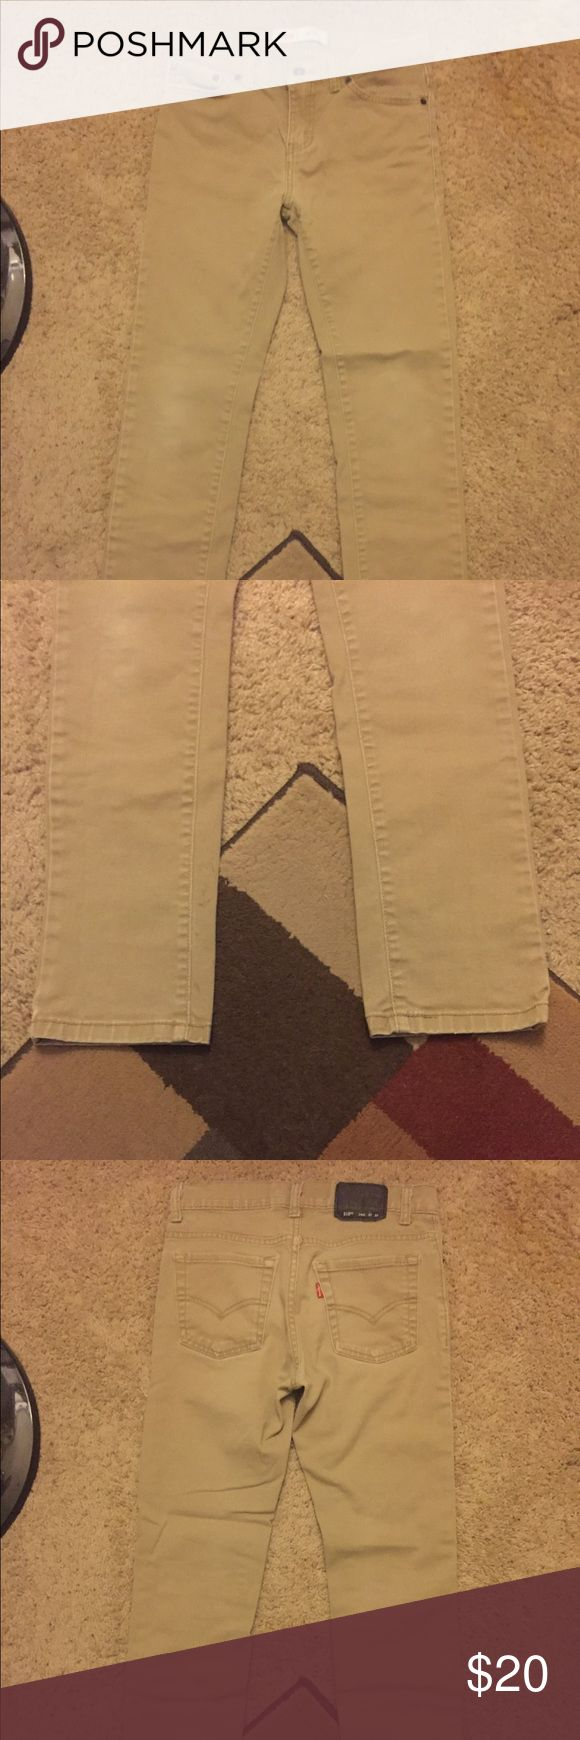 """Levi's 510. Young men's, 27""""x 27"""" (14 regular). Levi's 510. Young men's, khaki, skinny jeans. Size 27""""Wx 27""""L (14 regular). In """"like new"""" condition! See photos for close up details. Levi's Bottoms Jeans"""